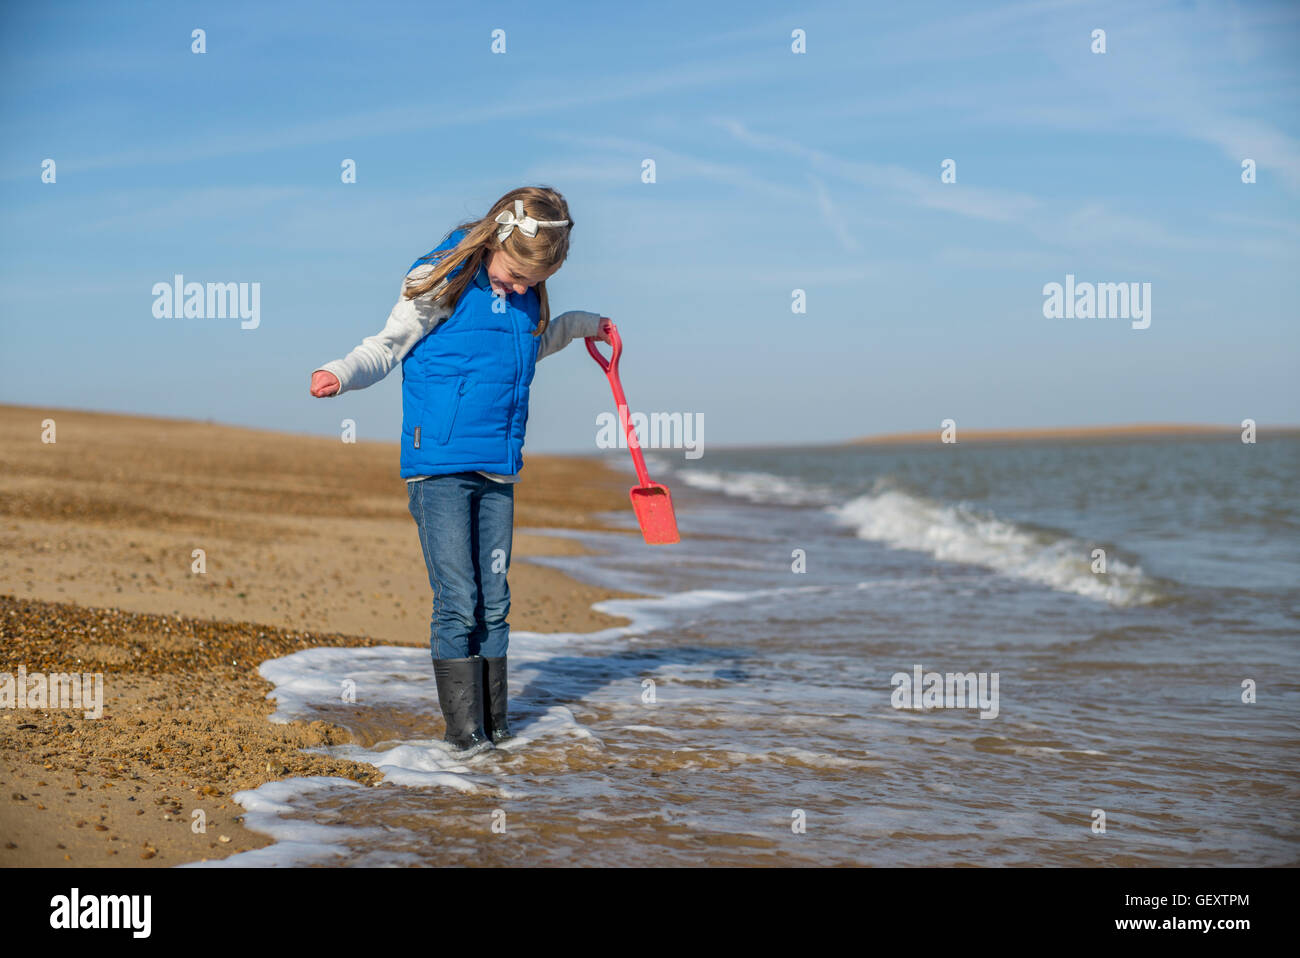 A young girl playing on the beach at Felixstowe. - Stock Image